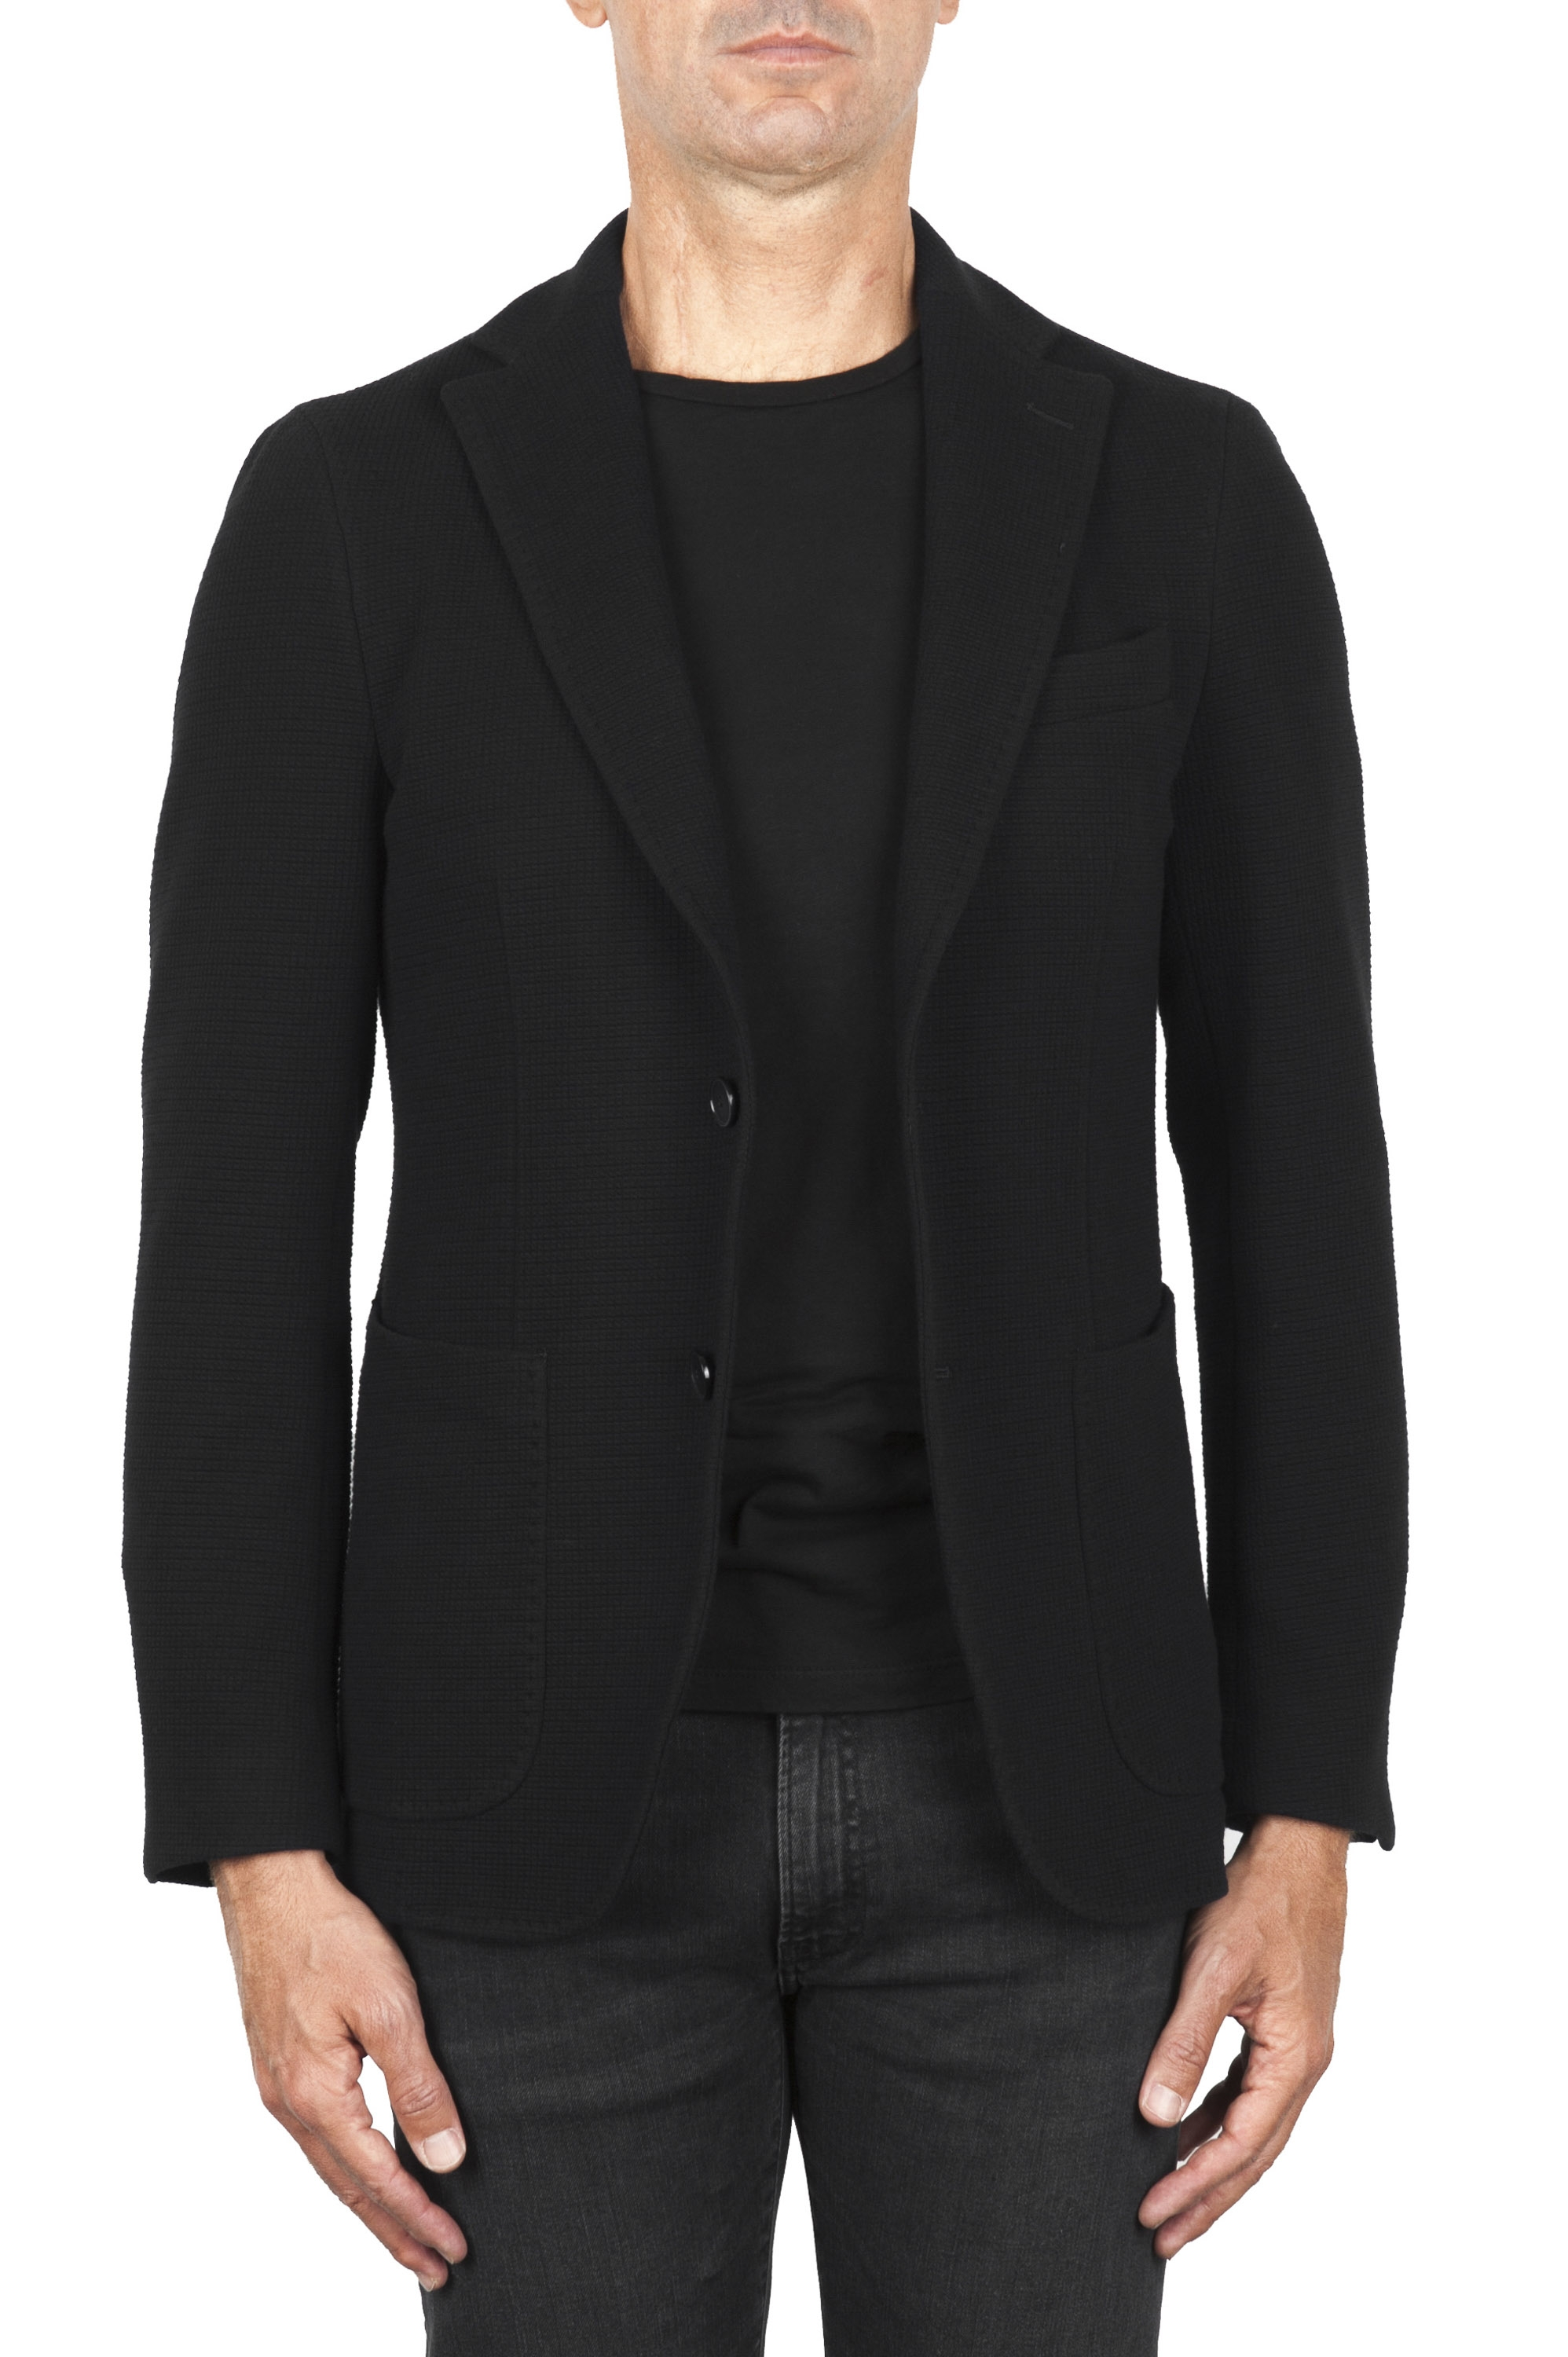 SBU 01840_19AW Black stretch cotton sport blazer unconstructed and unlined 01